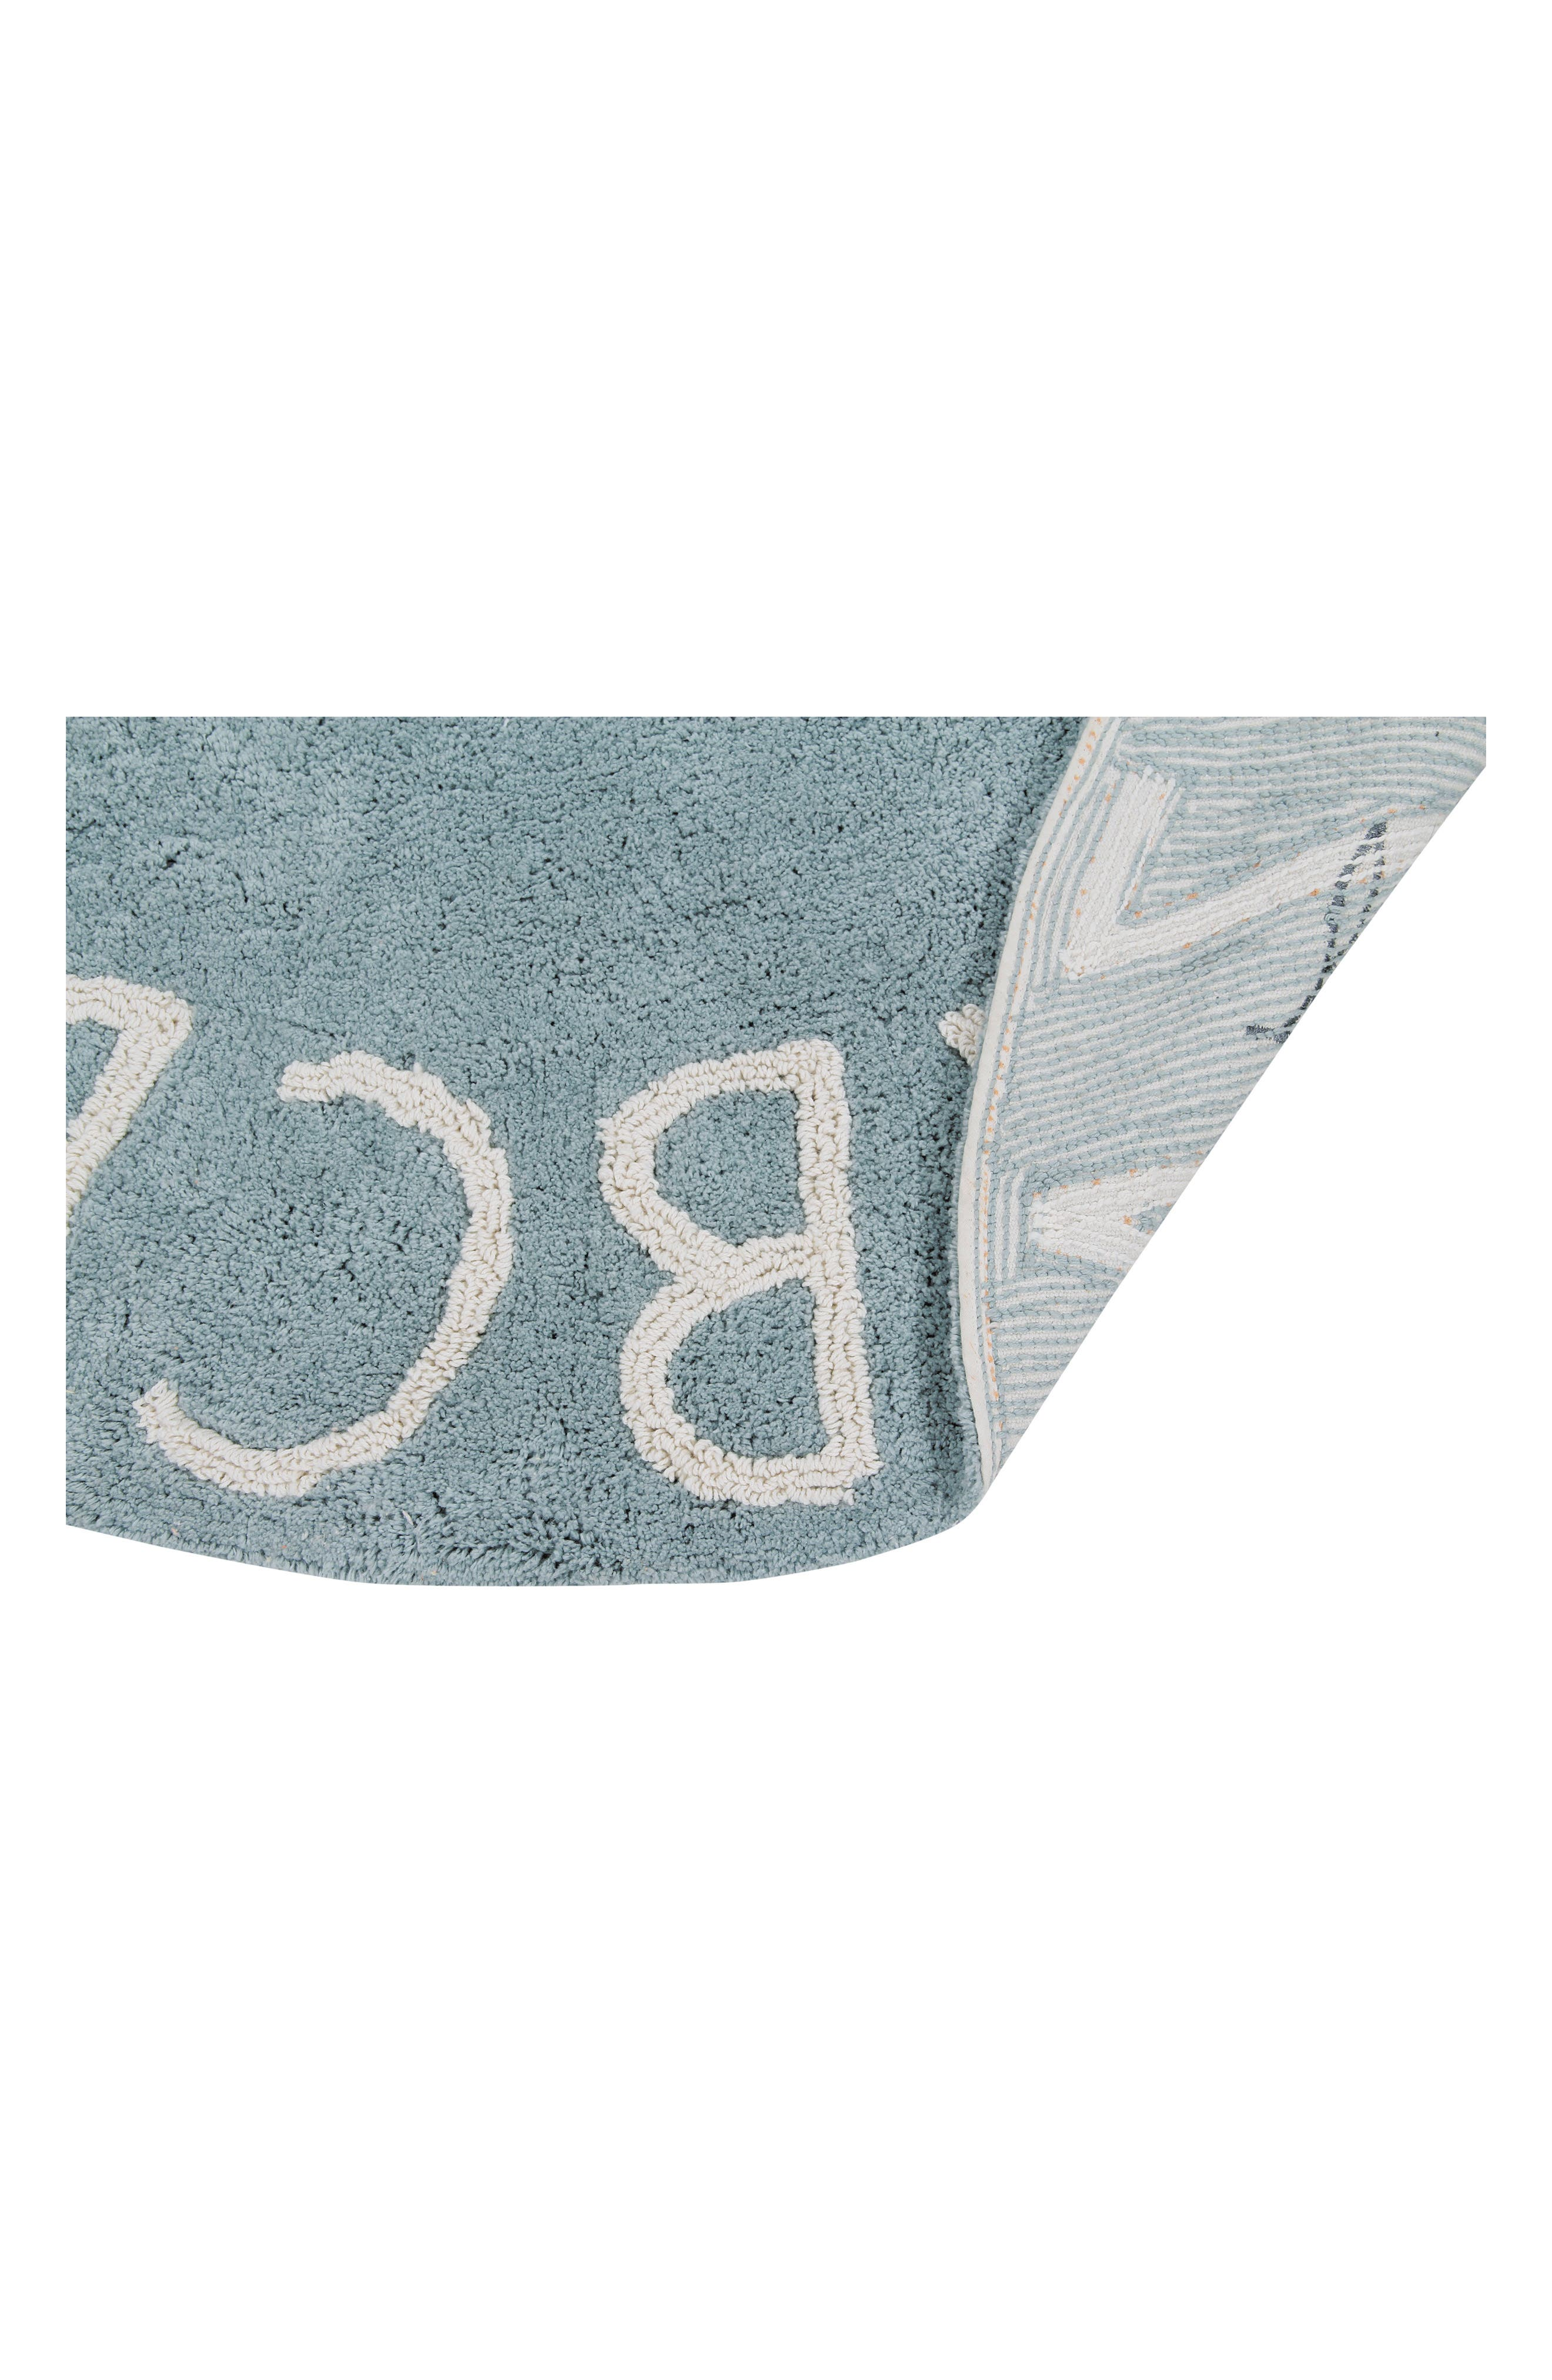 A to Z Rug,                             Alternate thumbnail 3, color,                             ROUND VINTAGE BLUE